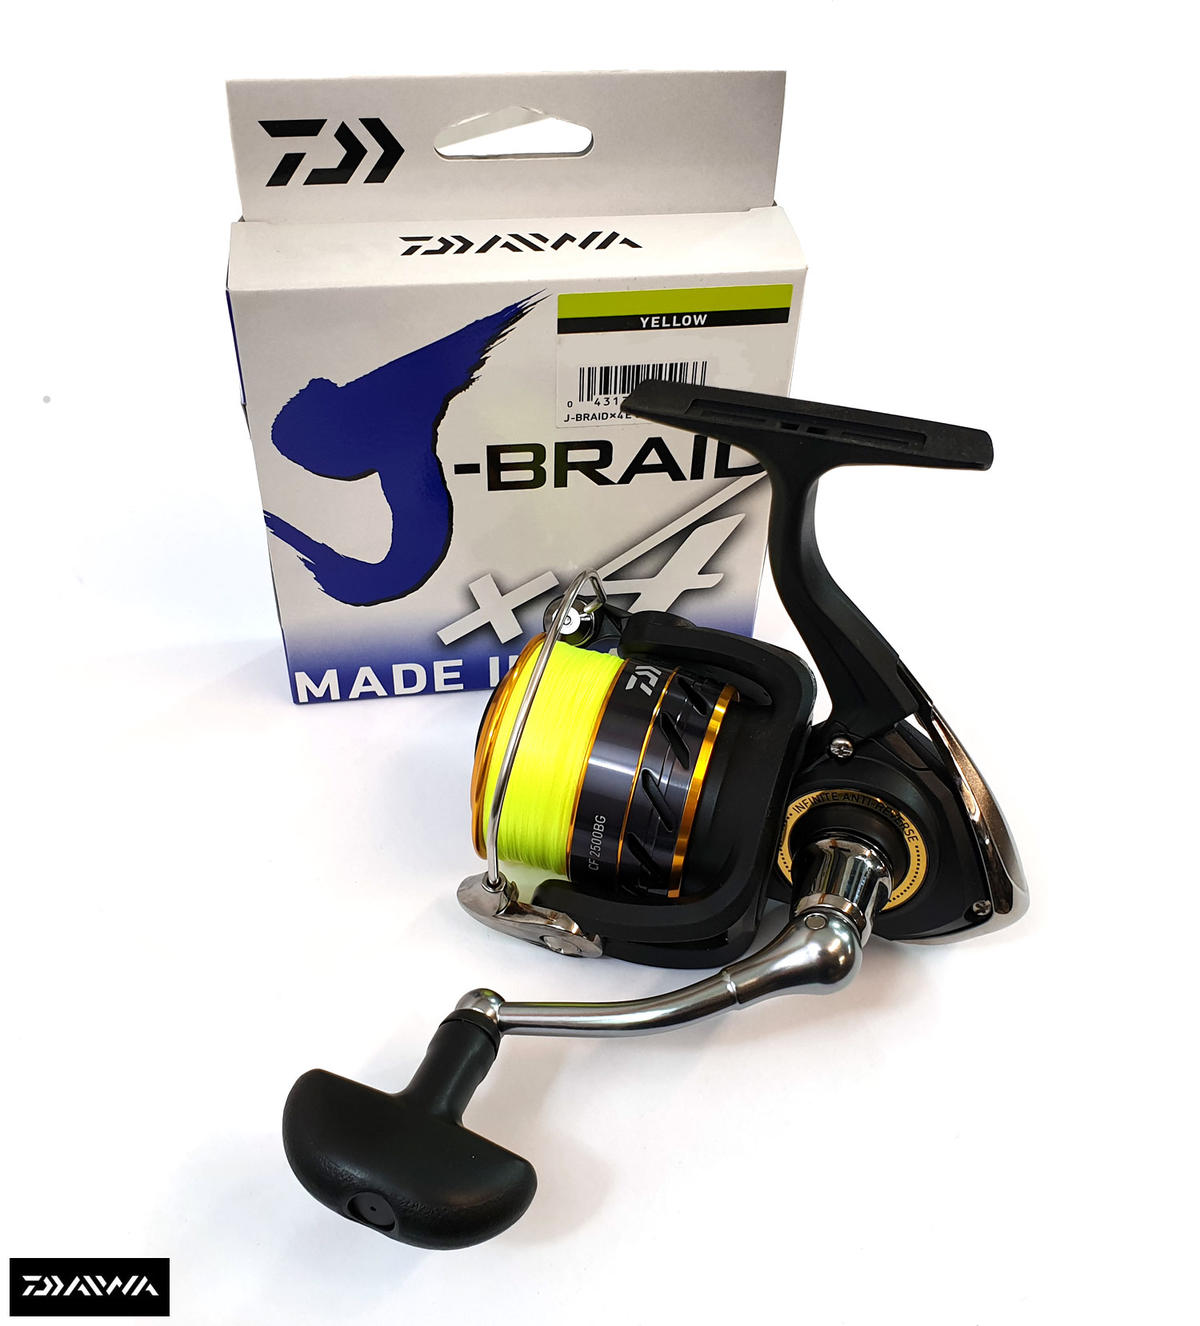 Special Offer Daiwa Crossfire 2500BG Fishing Reel - Fully Loaded with J-Braid X4